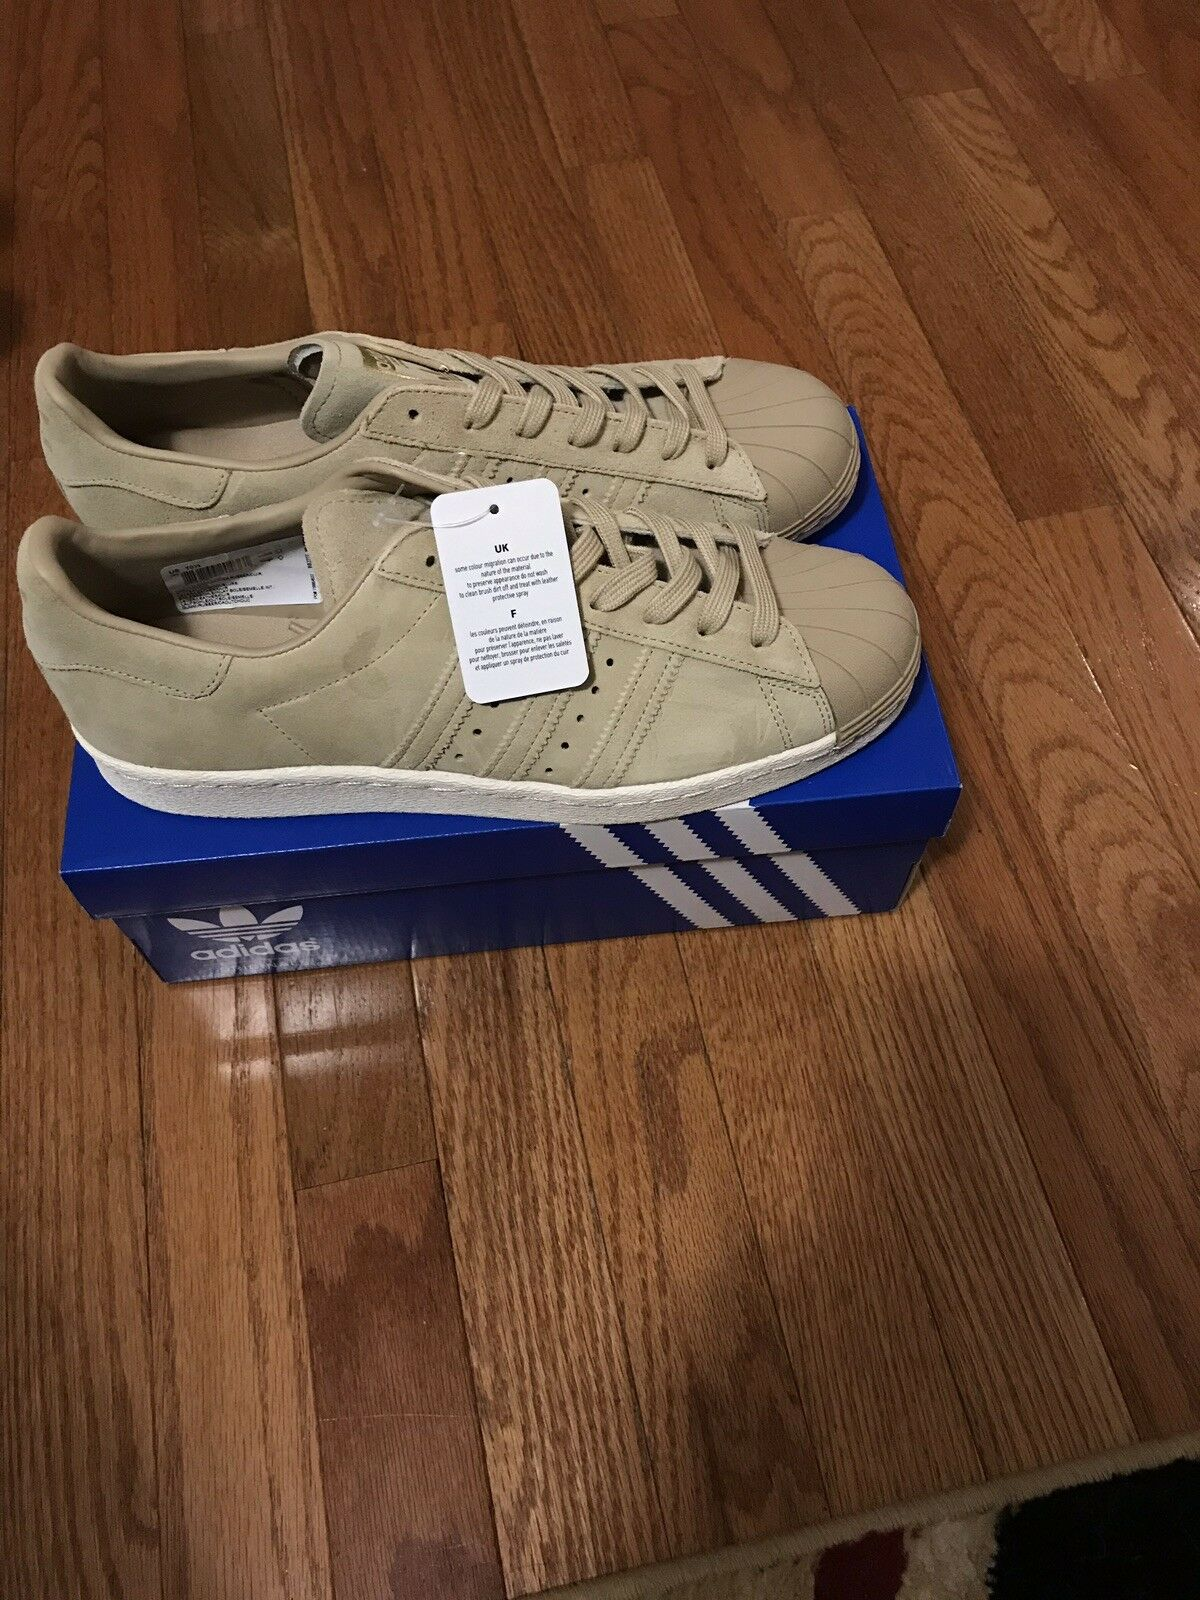 NEW MENS ADIDAS SUPERSTAR 80s SNEAKERS BB2227-SHOES-Size 10.5